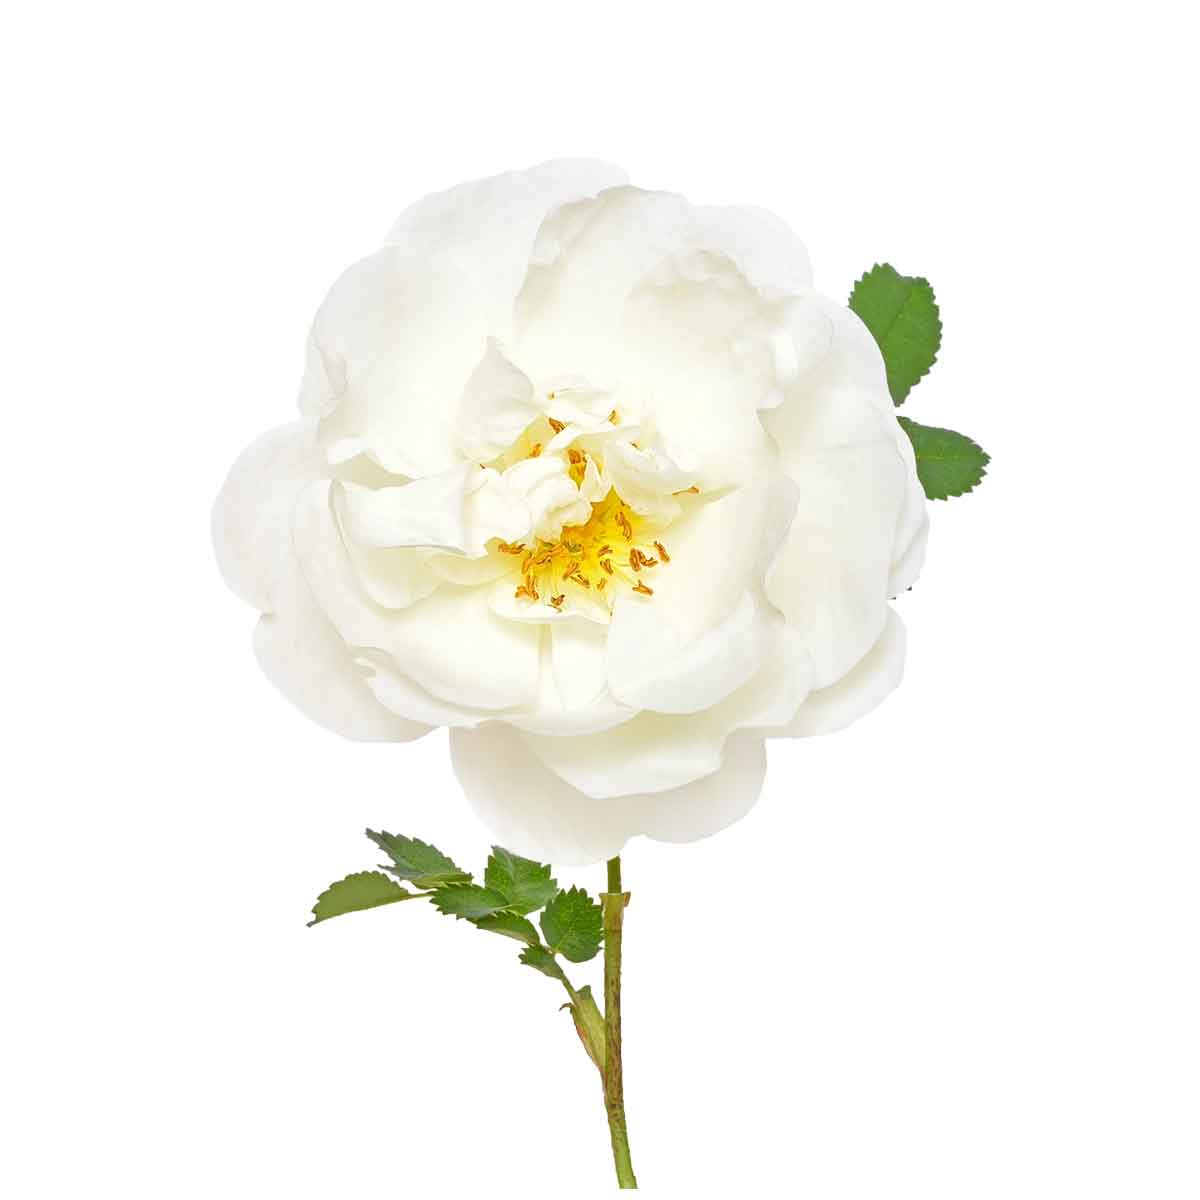 Calm contains botanical extracts found in white rose, reminding you to take pause in your day. -